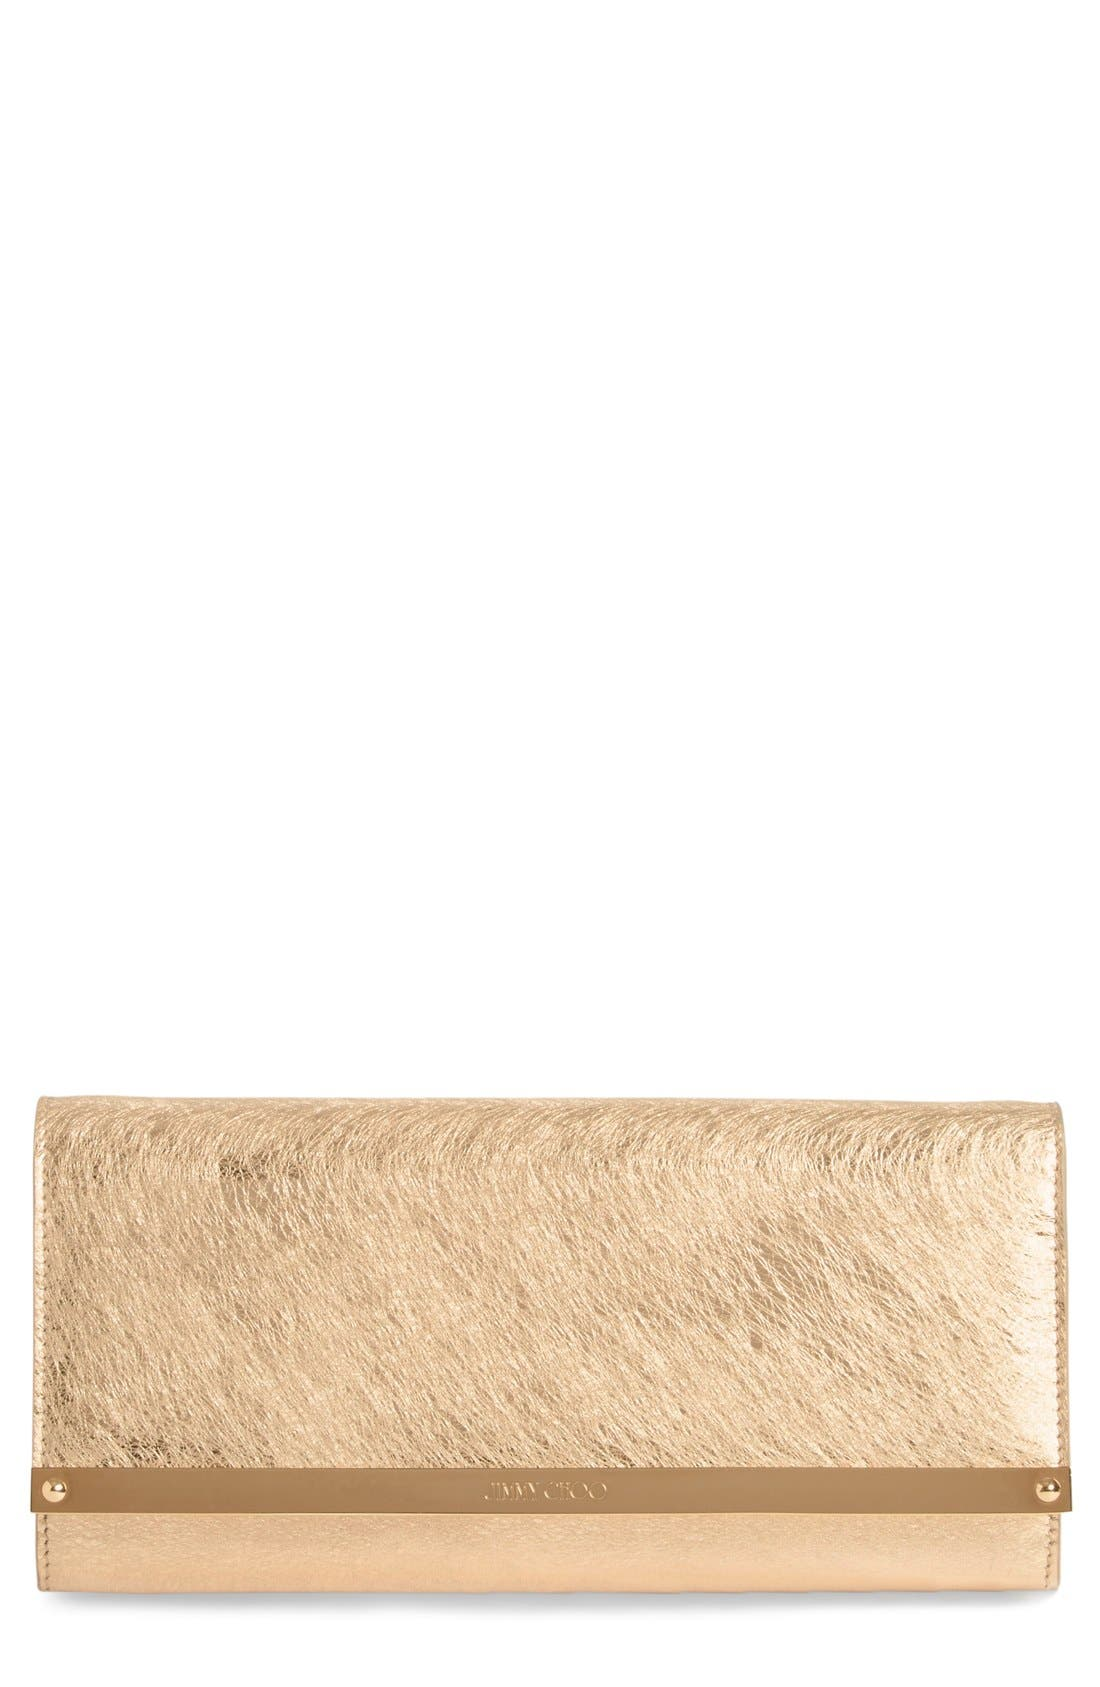 'Milla' Etched Metallic Spazzolato Leather Flap Clutch,                             Main thumbnail 1, color,                             Gold